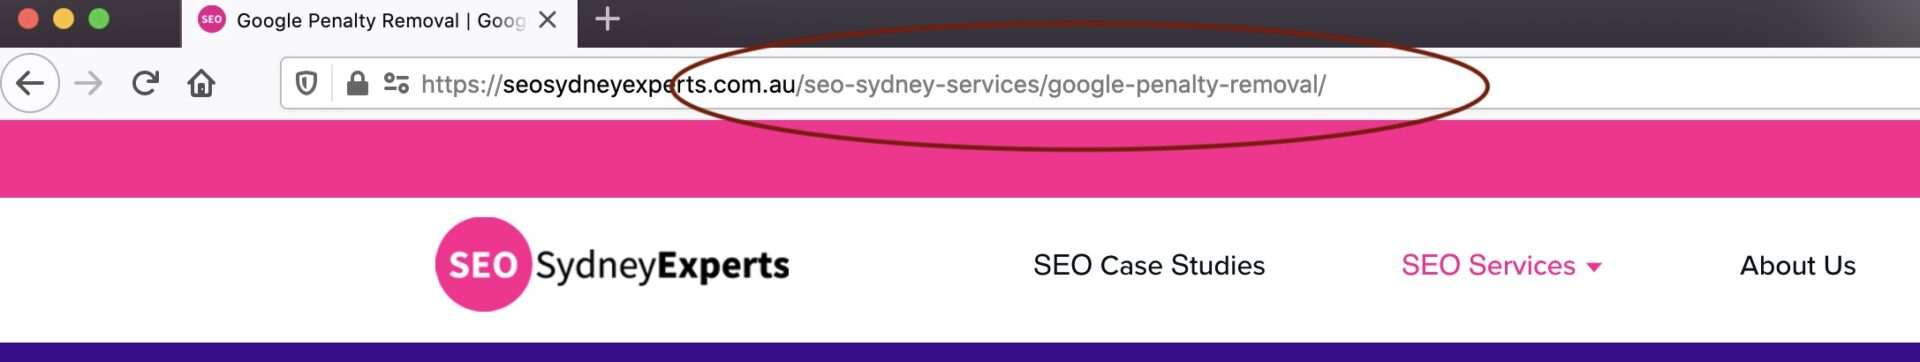 URL structure example for seo sydney experts